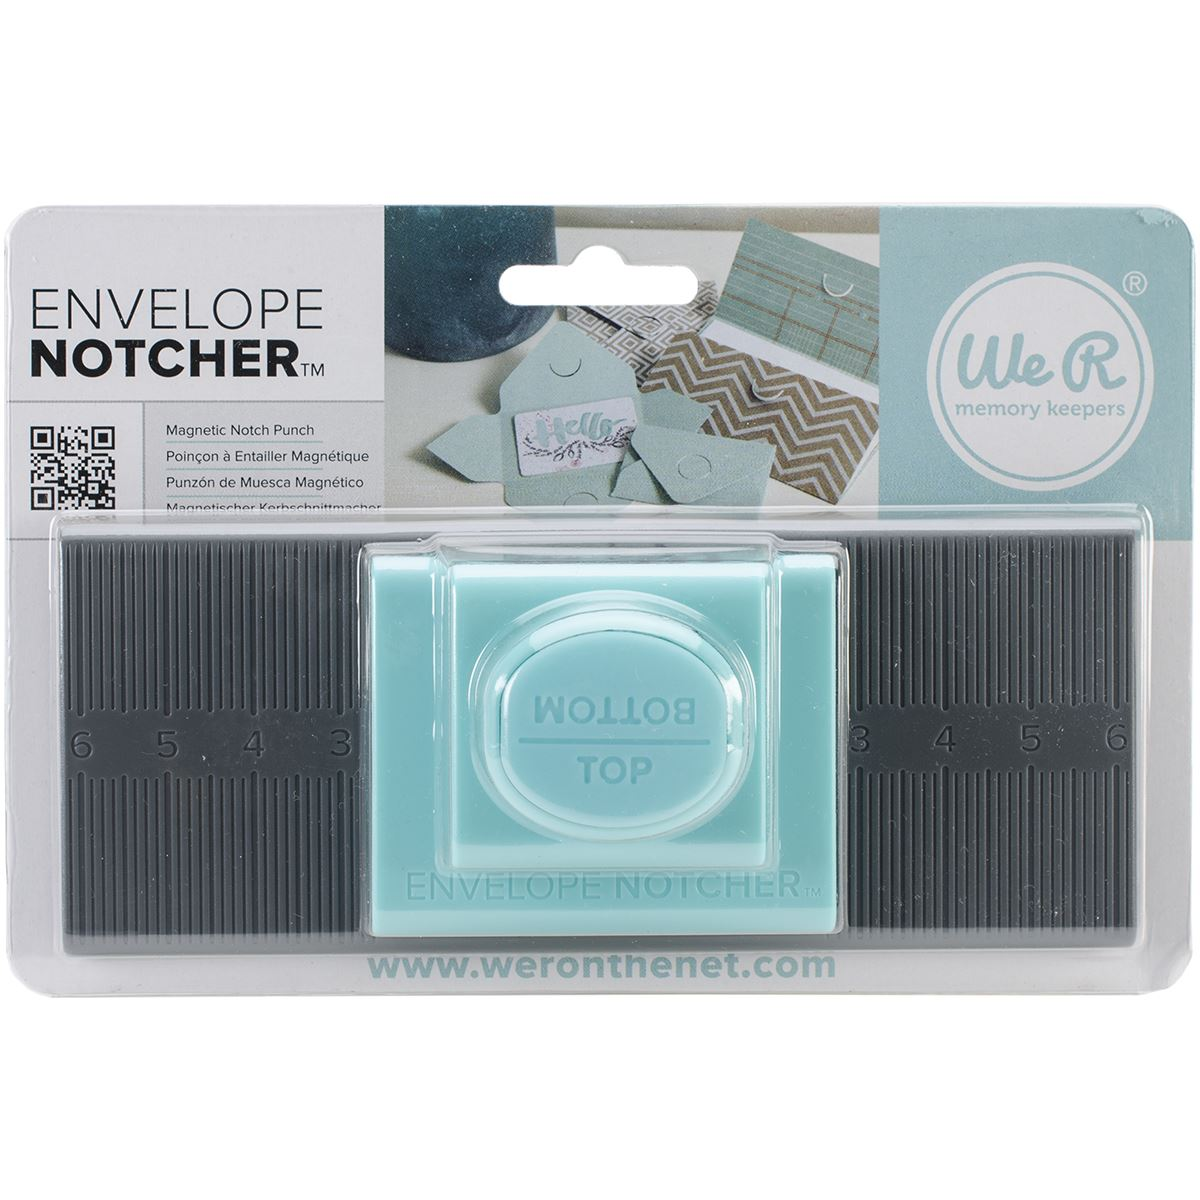 Envelope Notcher Punch - We R Memory Keepers